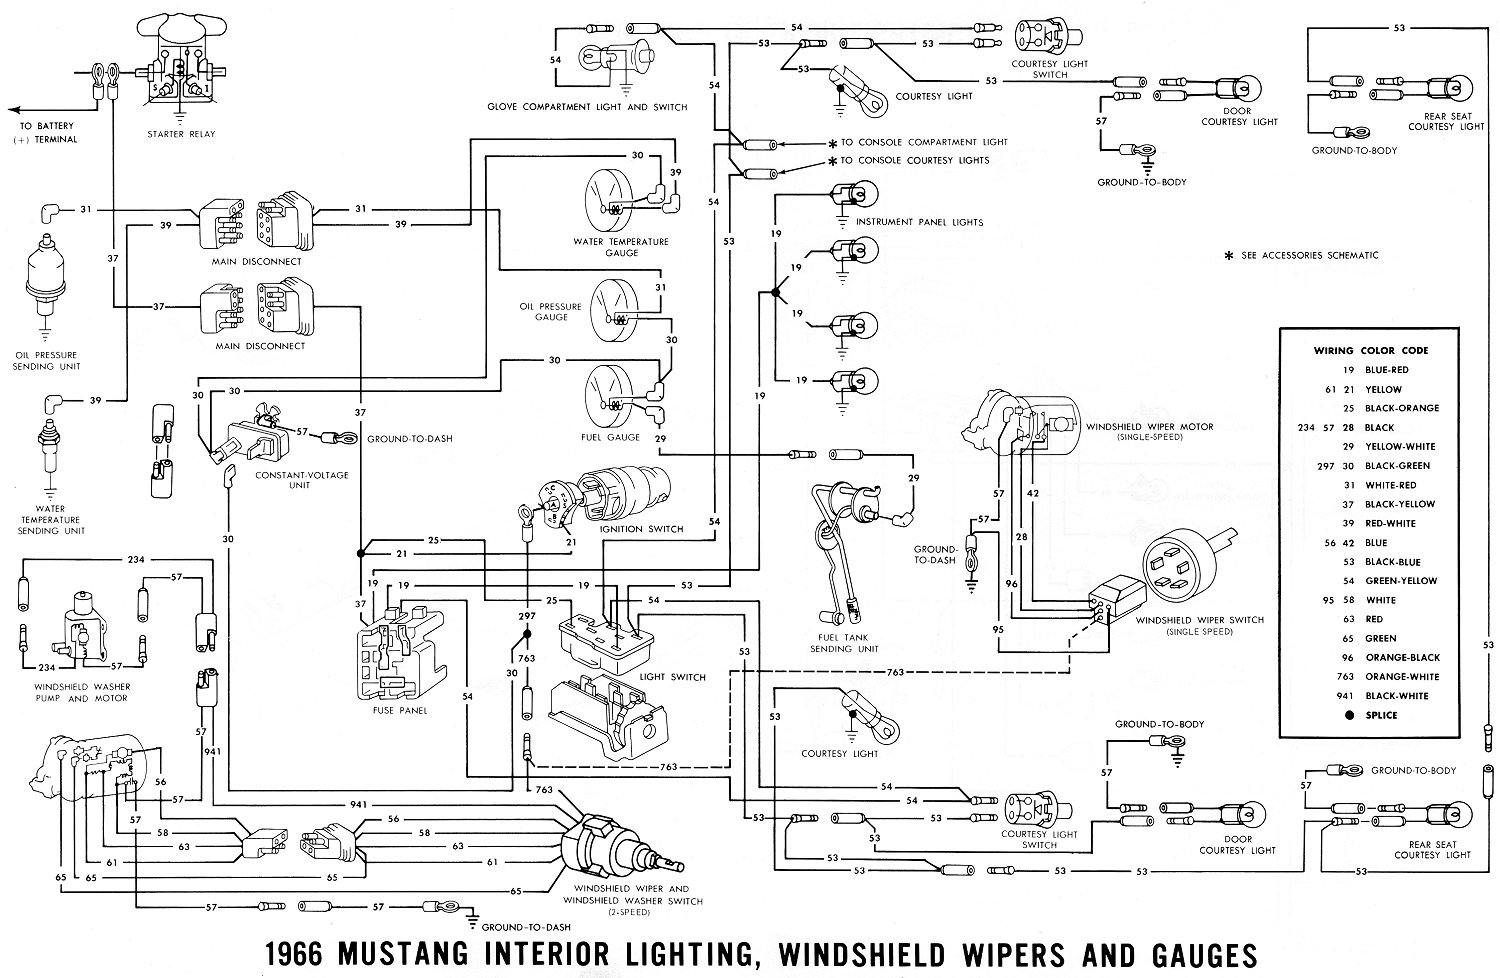 66inter1 1966 mustang wiring diagrams average joe restoration 65 mustang tail light wiring diagram at n-0.co